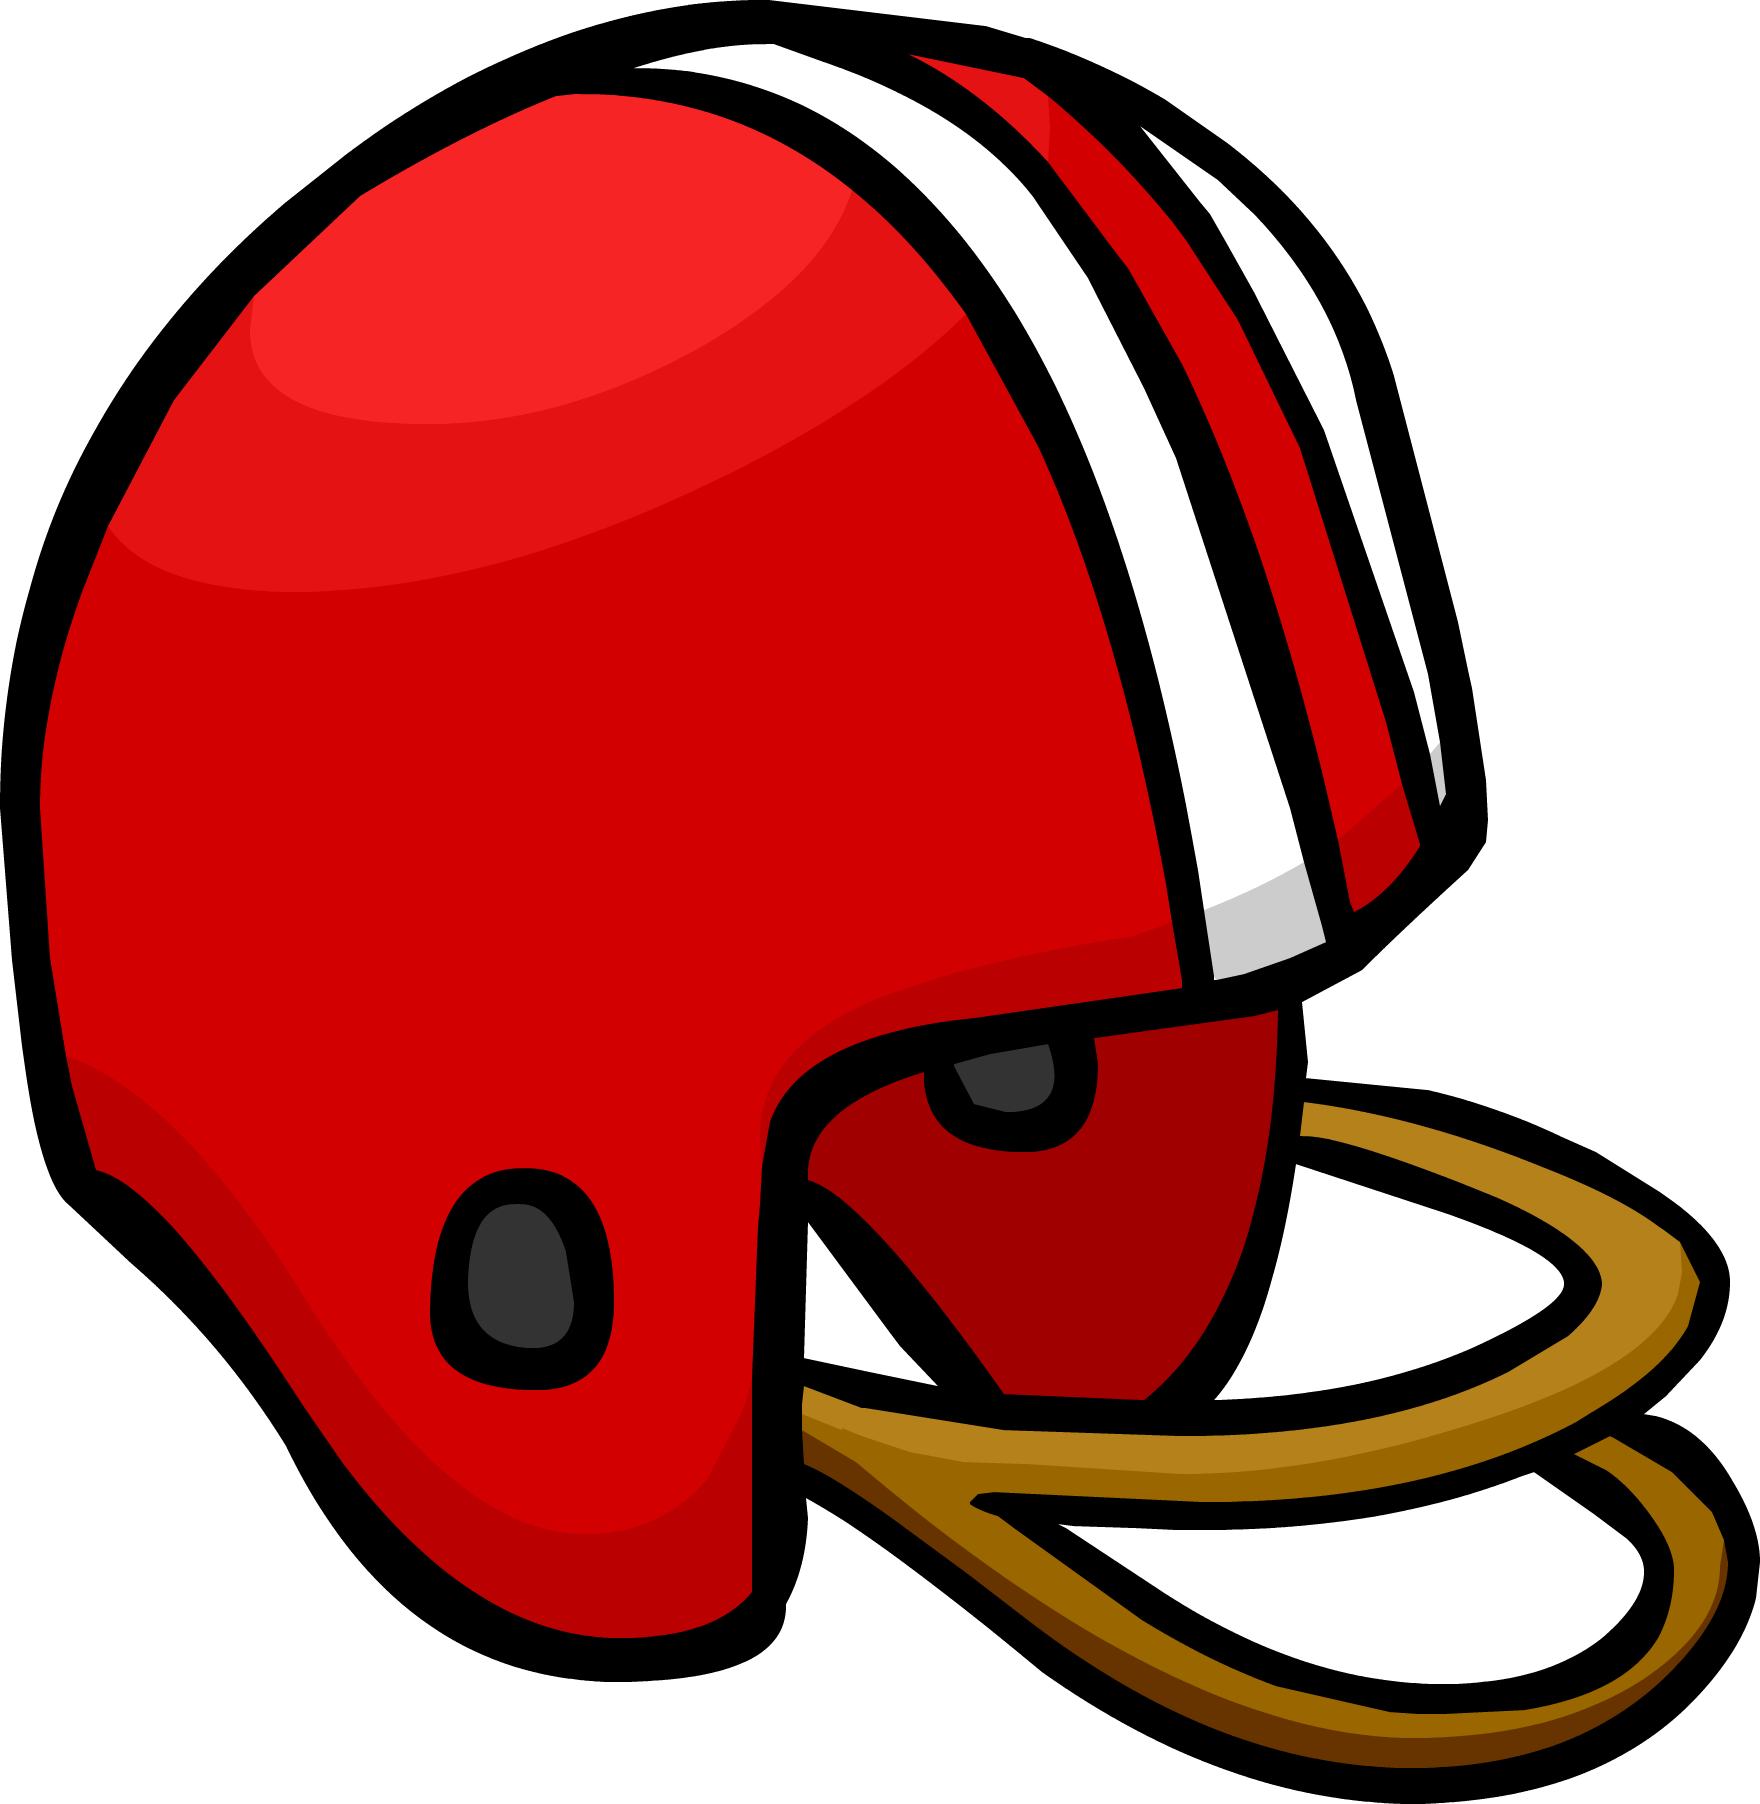 Packers football clipart black and white library Red Football Helmet | Club Penguin Wiki | FANDOM powered by Wikia black and white library